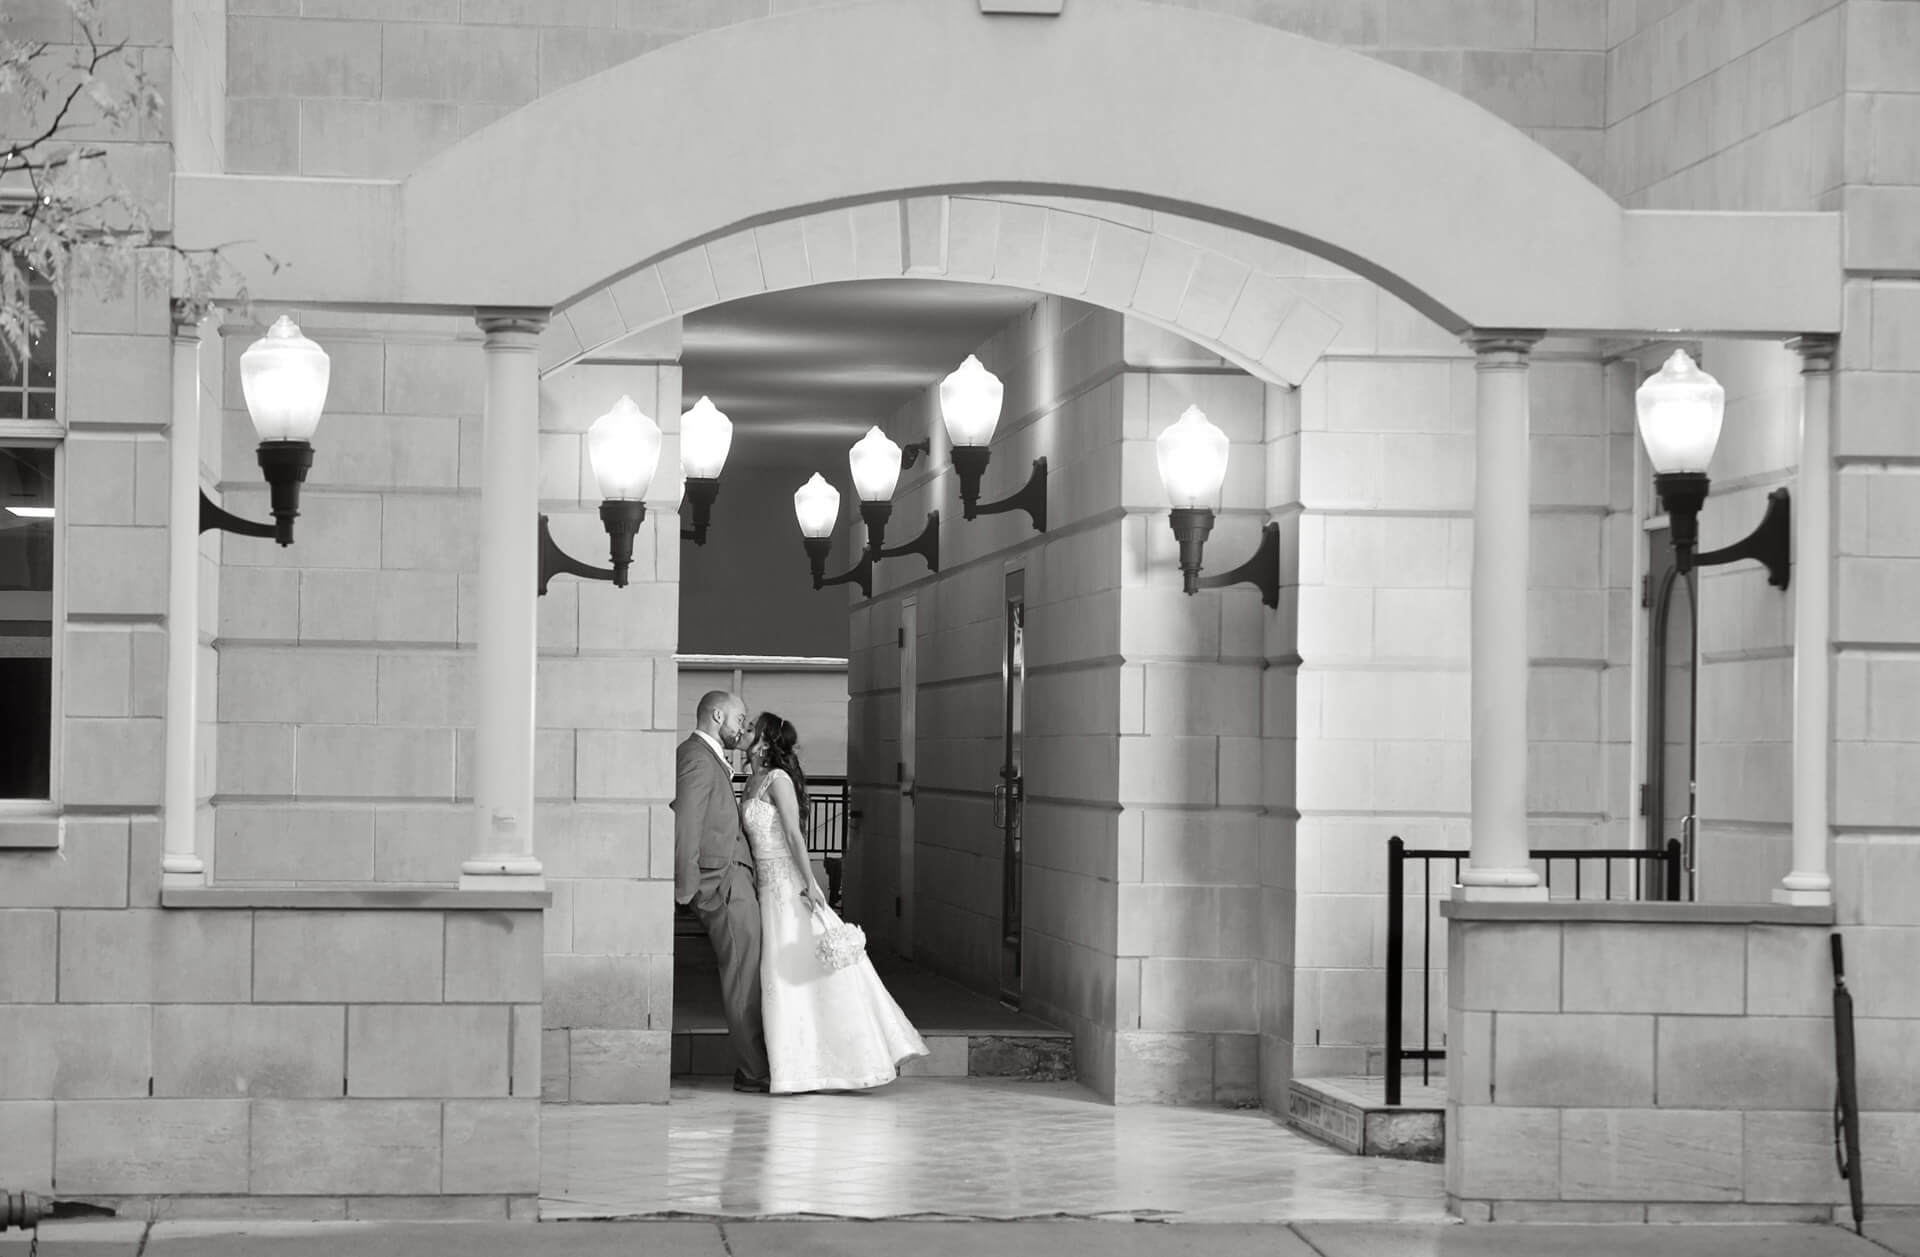 Bride and Groom snuggle and keep out of the rain in Plymouth, Michigan during their wedding.